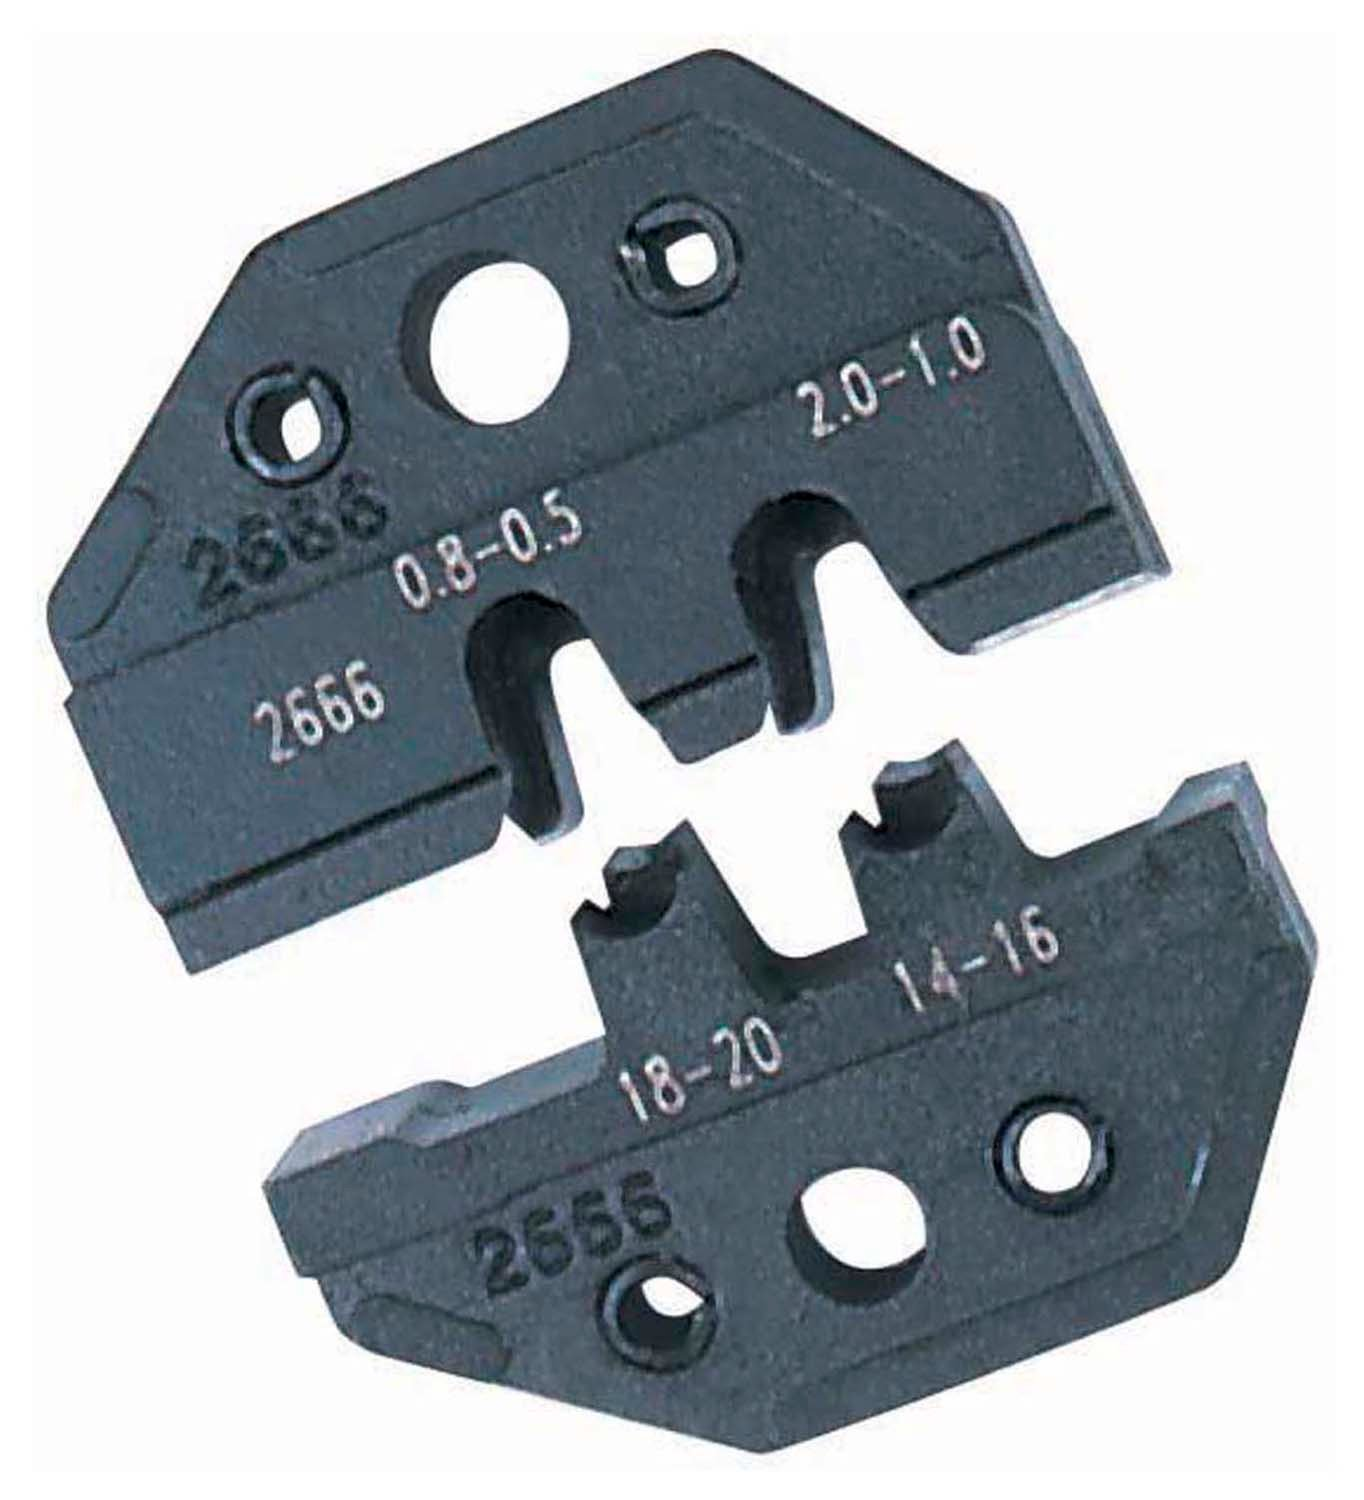 Weatherpak Crimp Jaws, Fits PN 35051